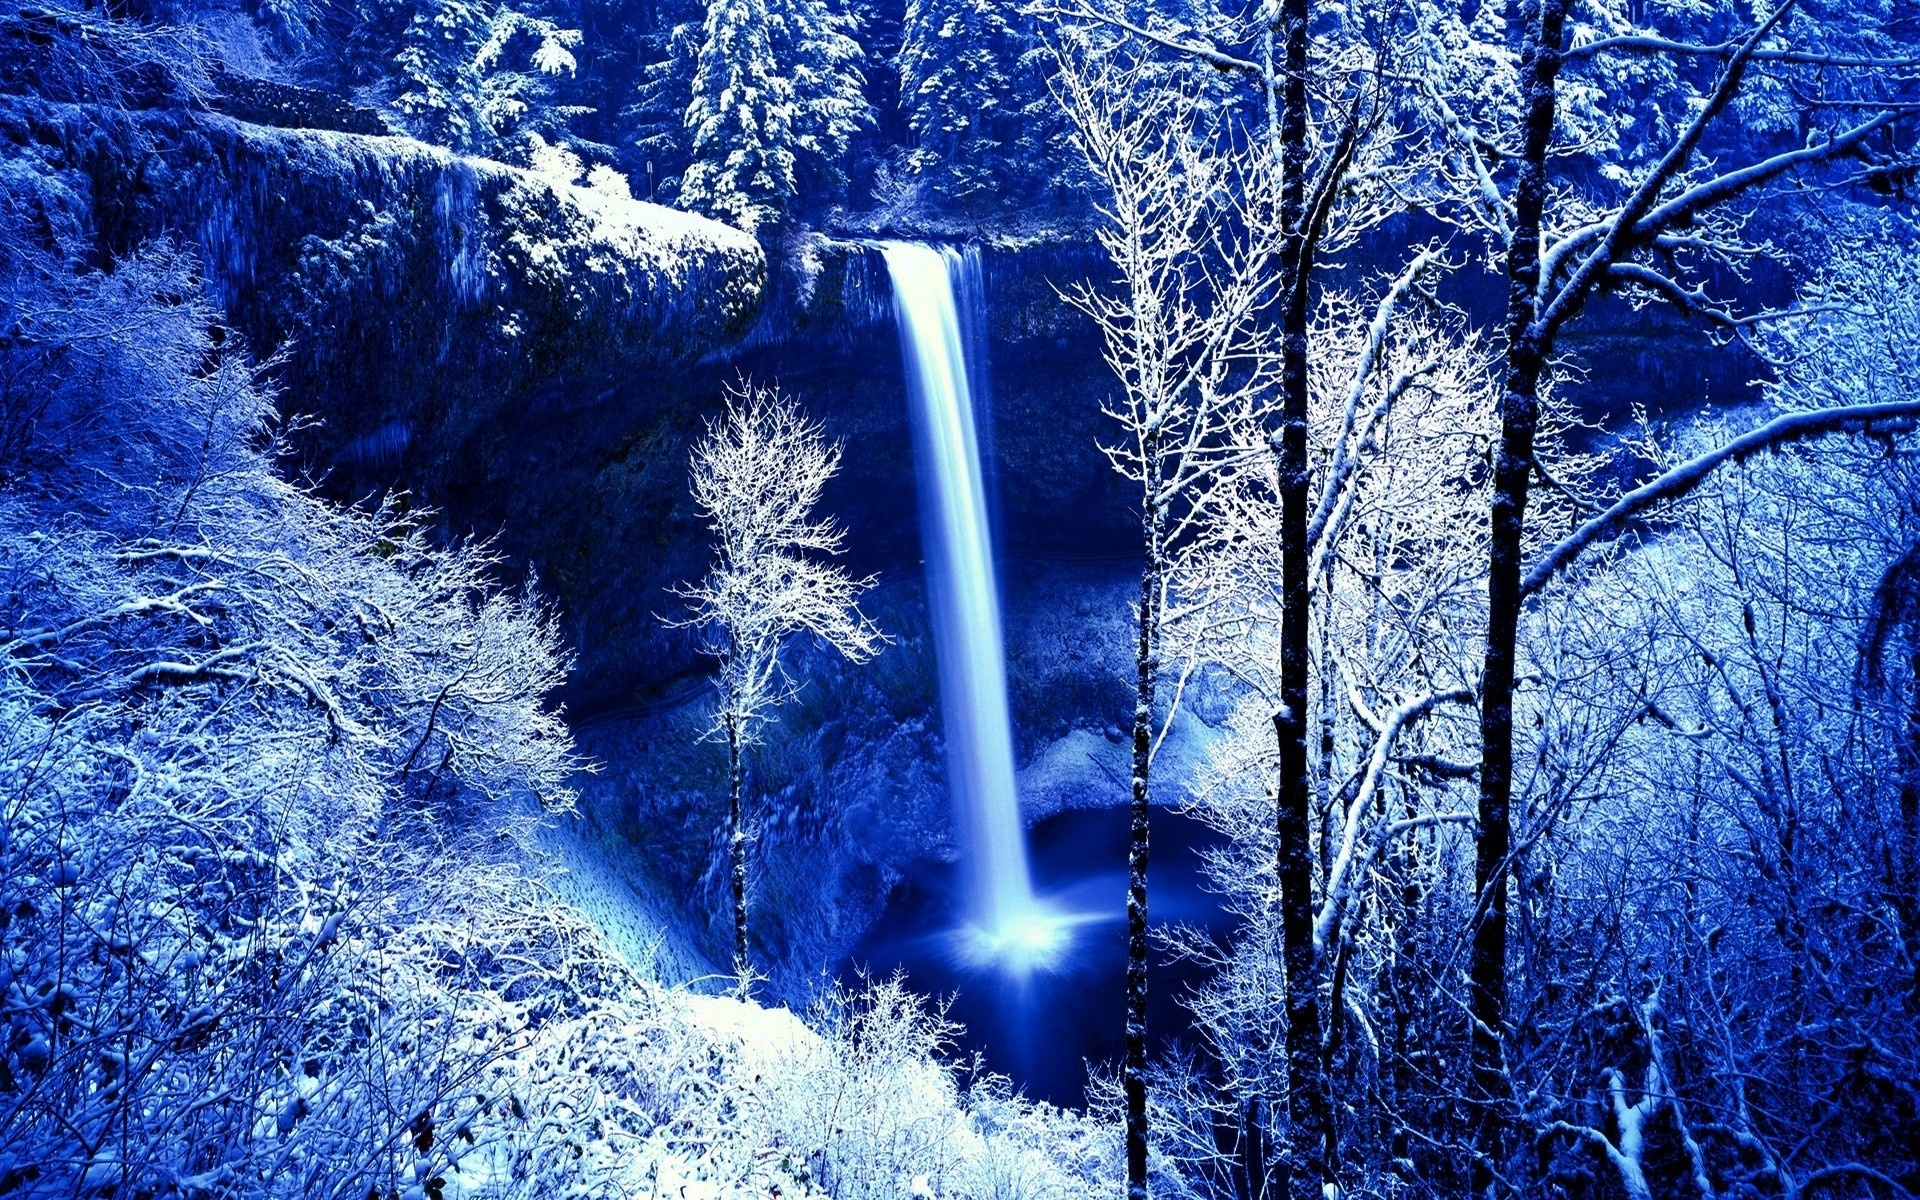 Blue Waterfall in Winter wallpaper   ForWallpapercom 1920x1200